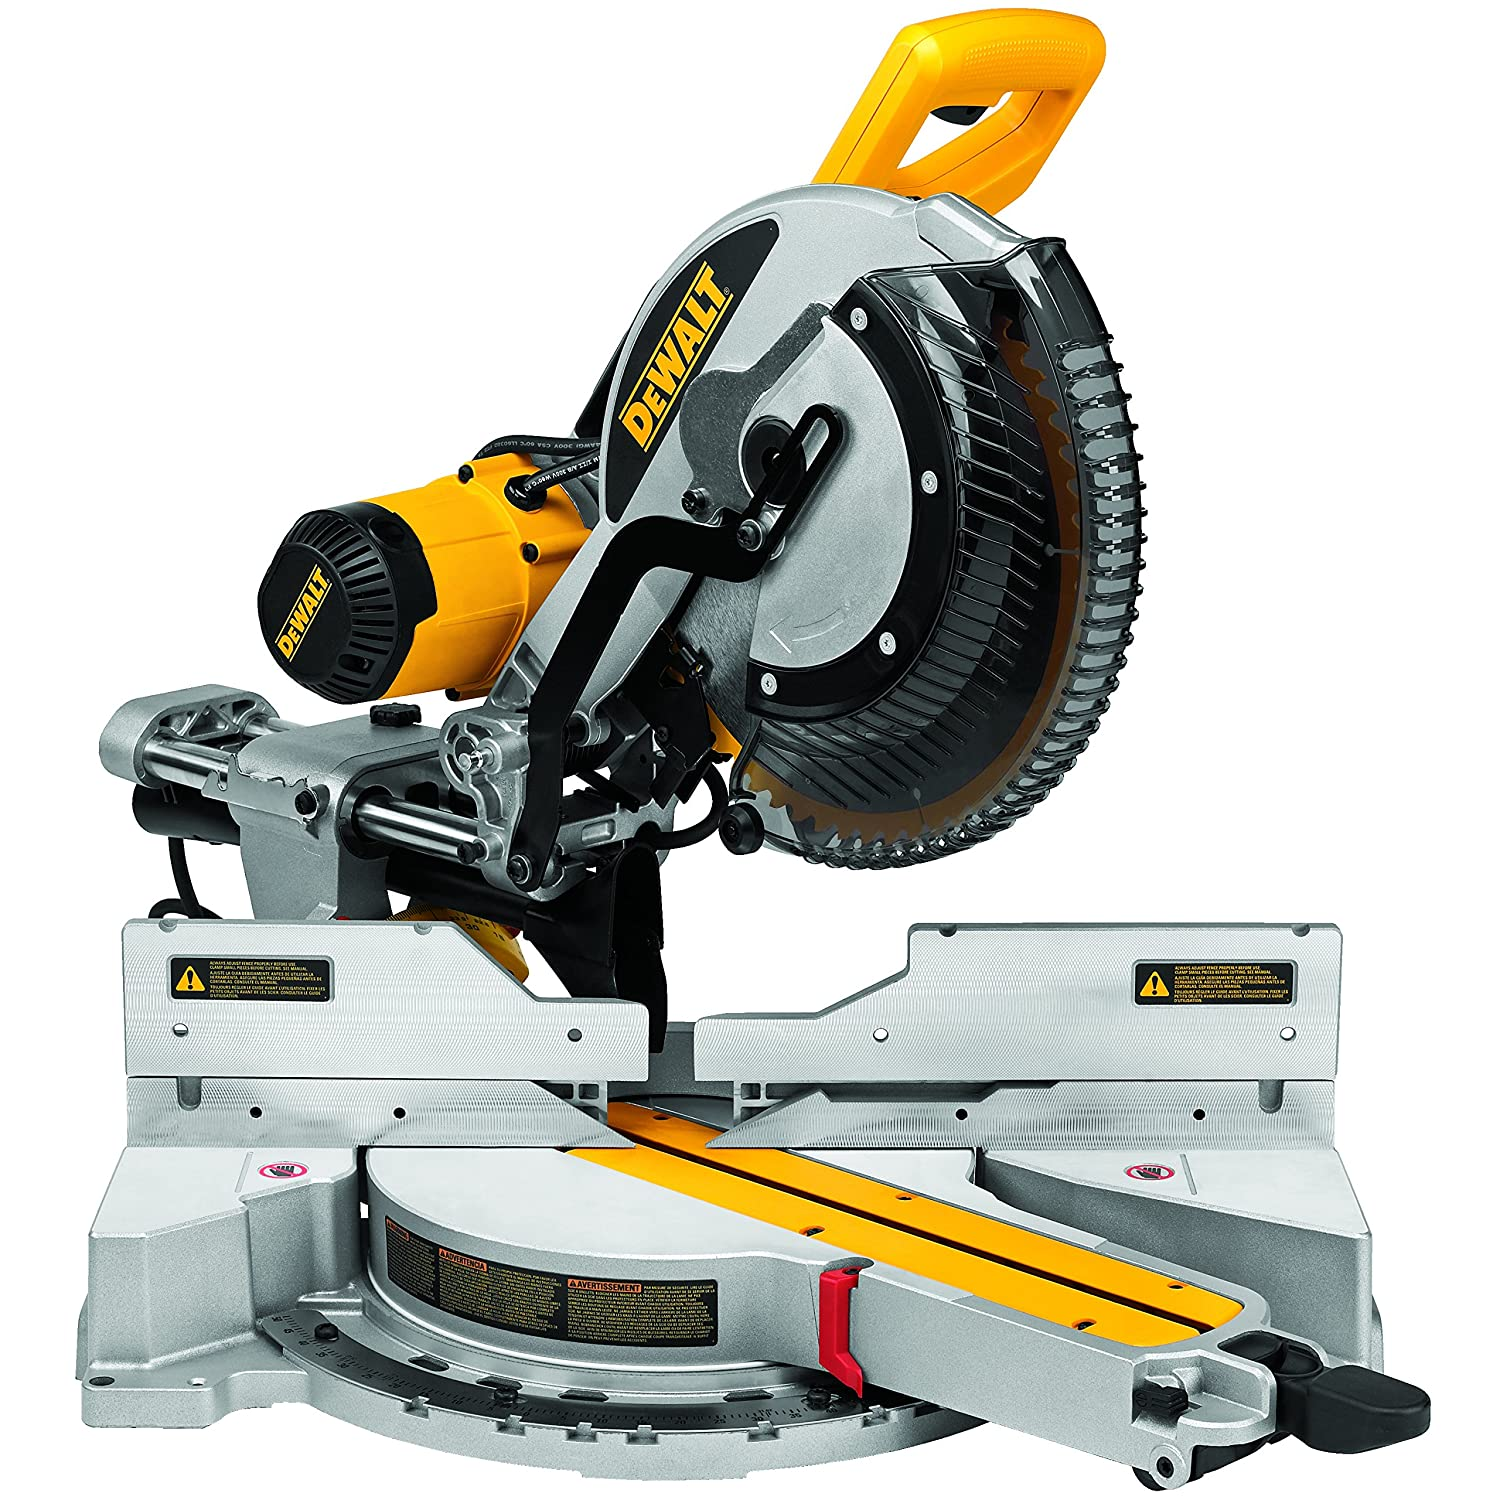 305mm Compound Slide Mitre Saw with variable speed